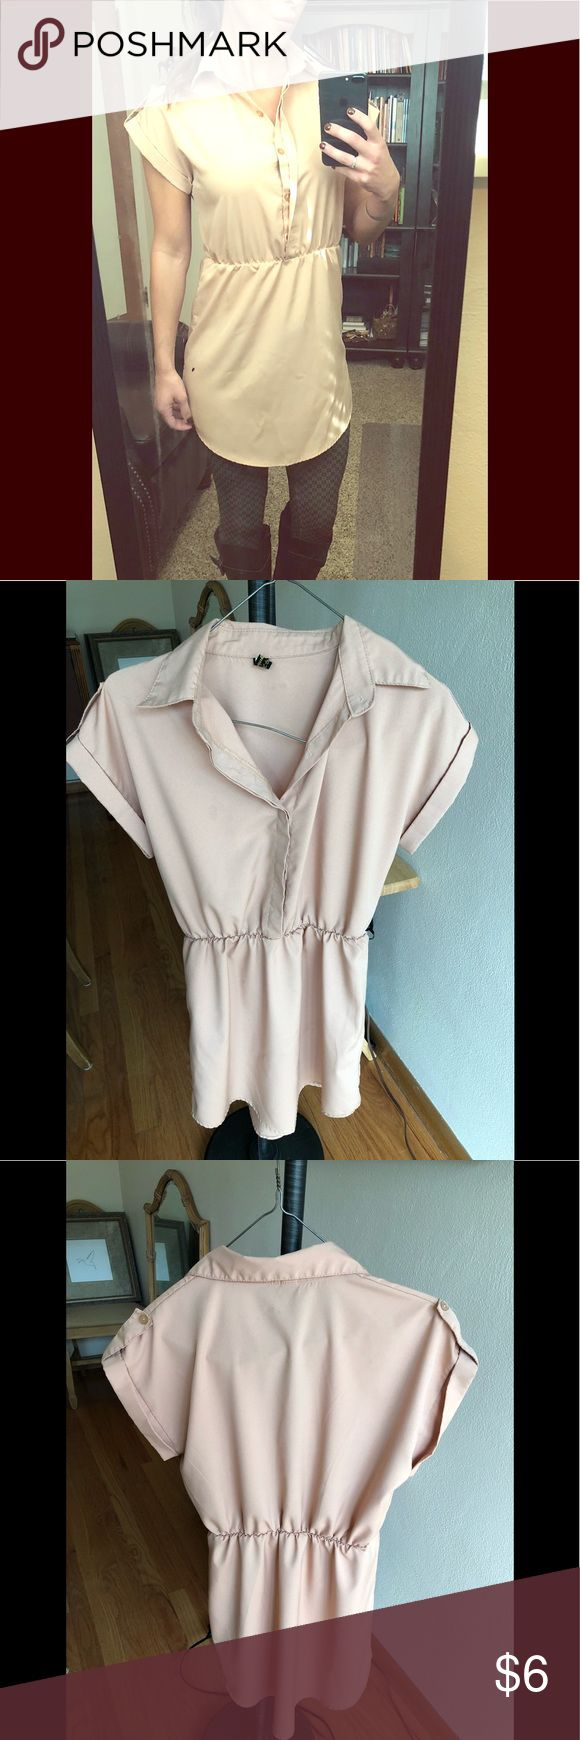 Short sleeve button up dress Camel colored cap sleeve dress. Buttons up halfway with empire waist.  Can expose the buttons or have fabric cover them.  Button details on the sleeves. Goes with any leggings, tights, boots, sweaters or jackets! Dresses